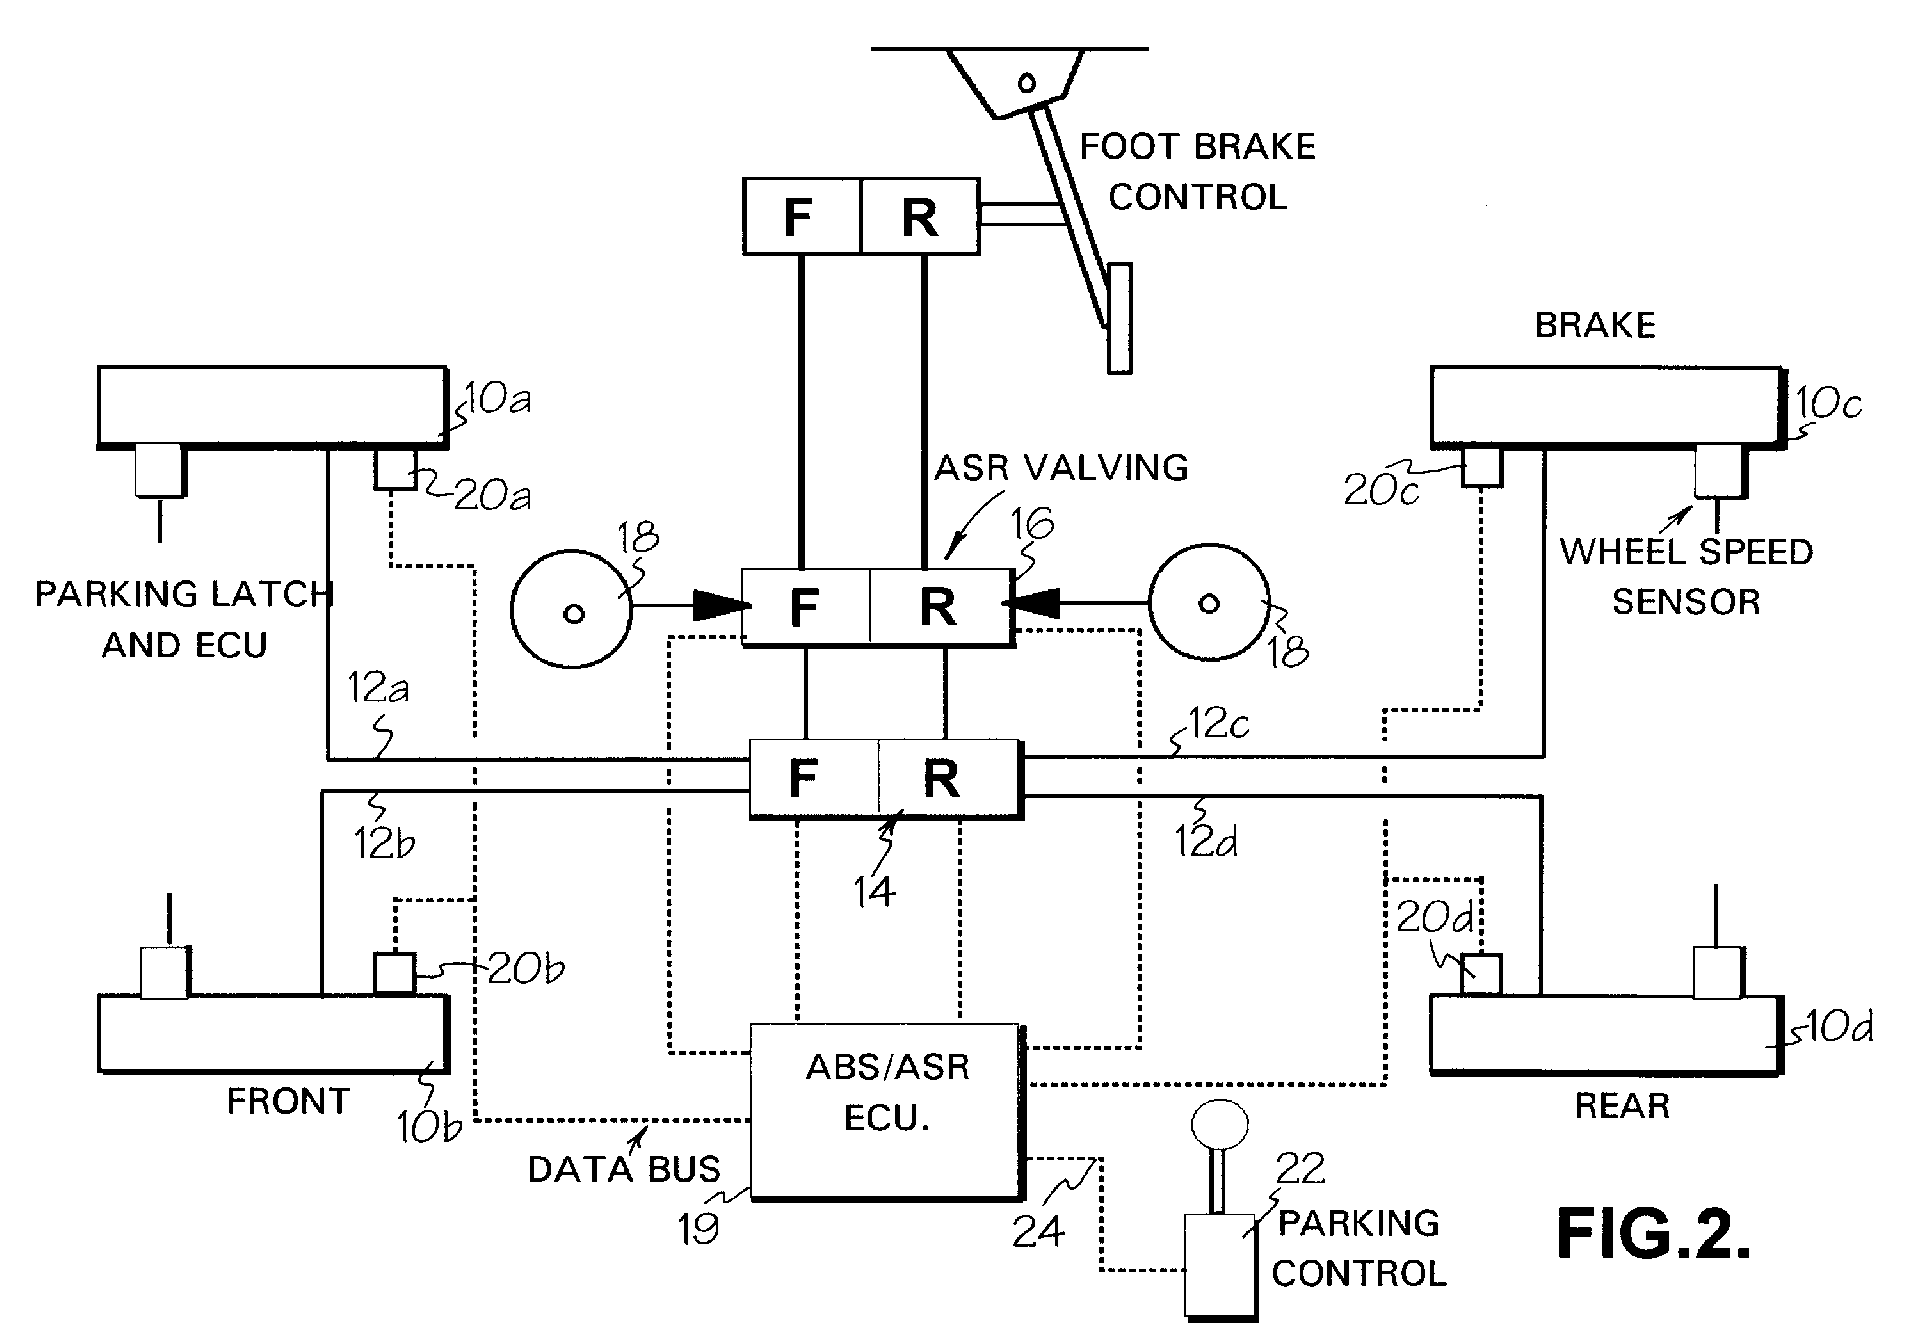 Ep0995659a1 Parking Braking In Vehicles Having Conventional Citroen C8 Abs Wiring Diagram Figure 00000001